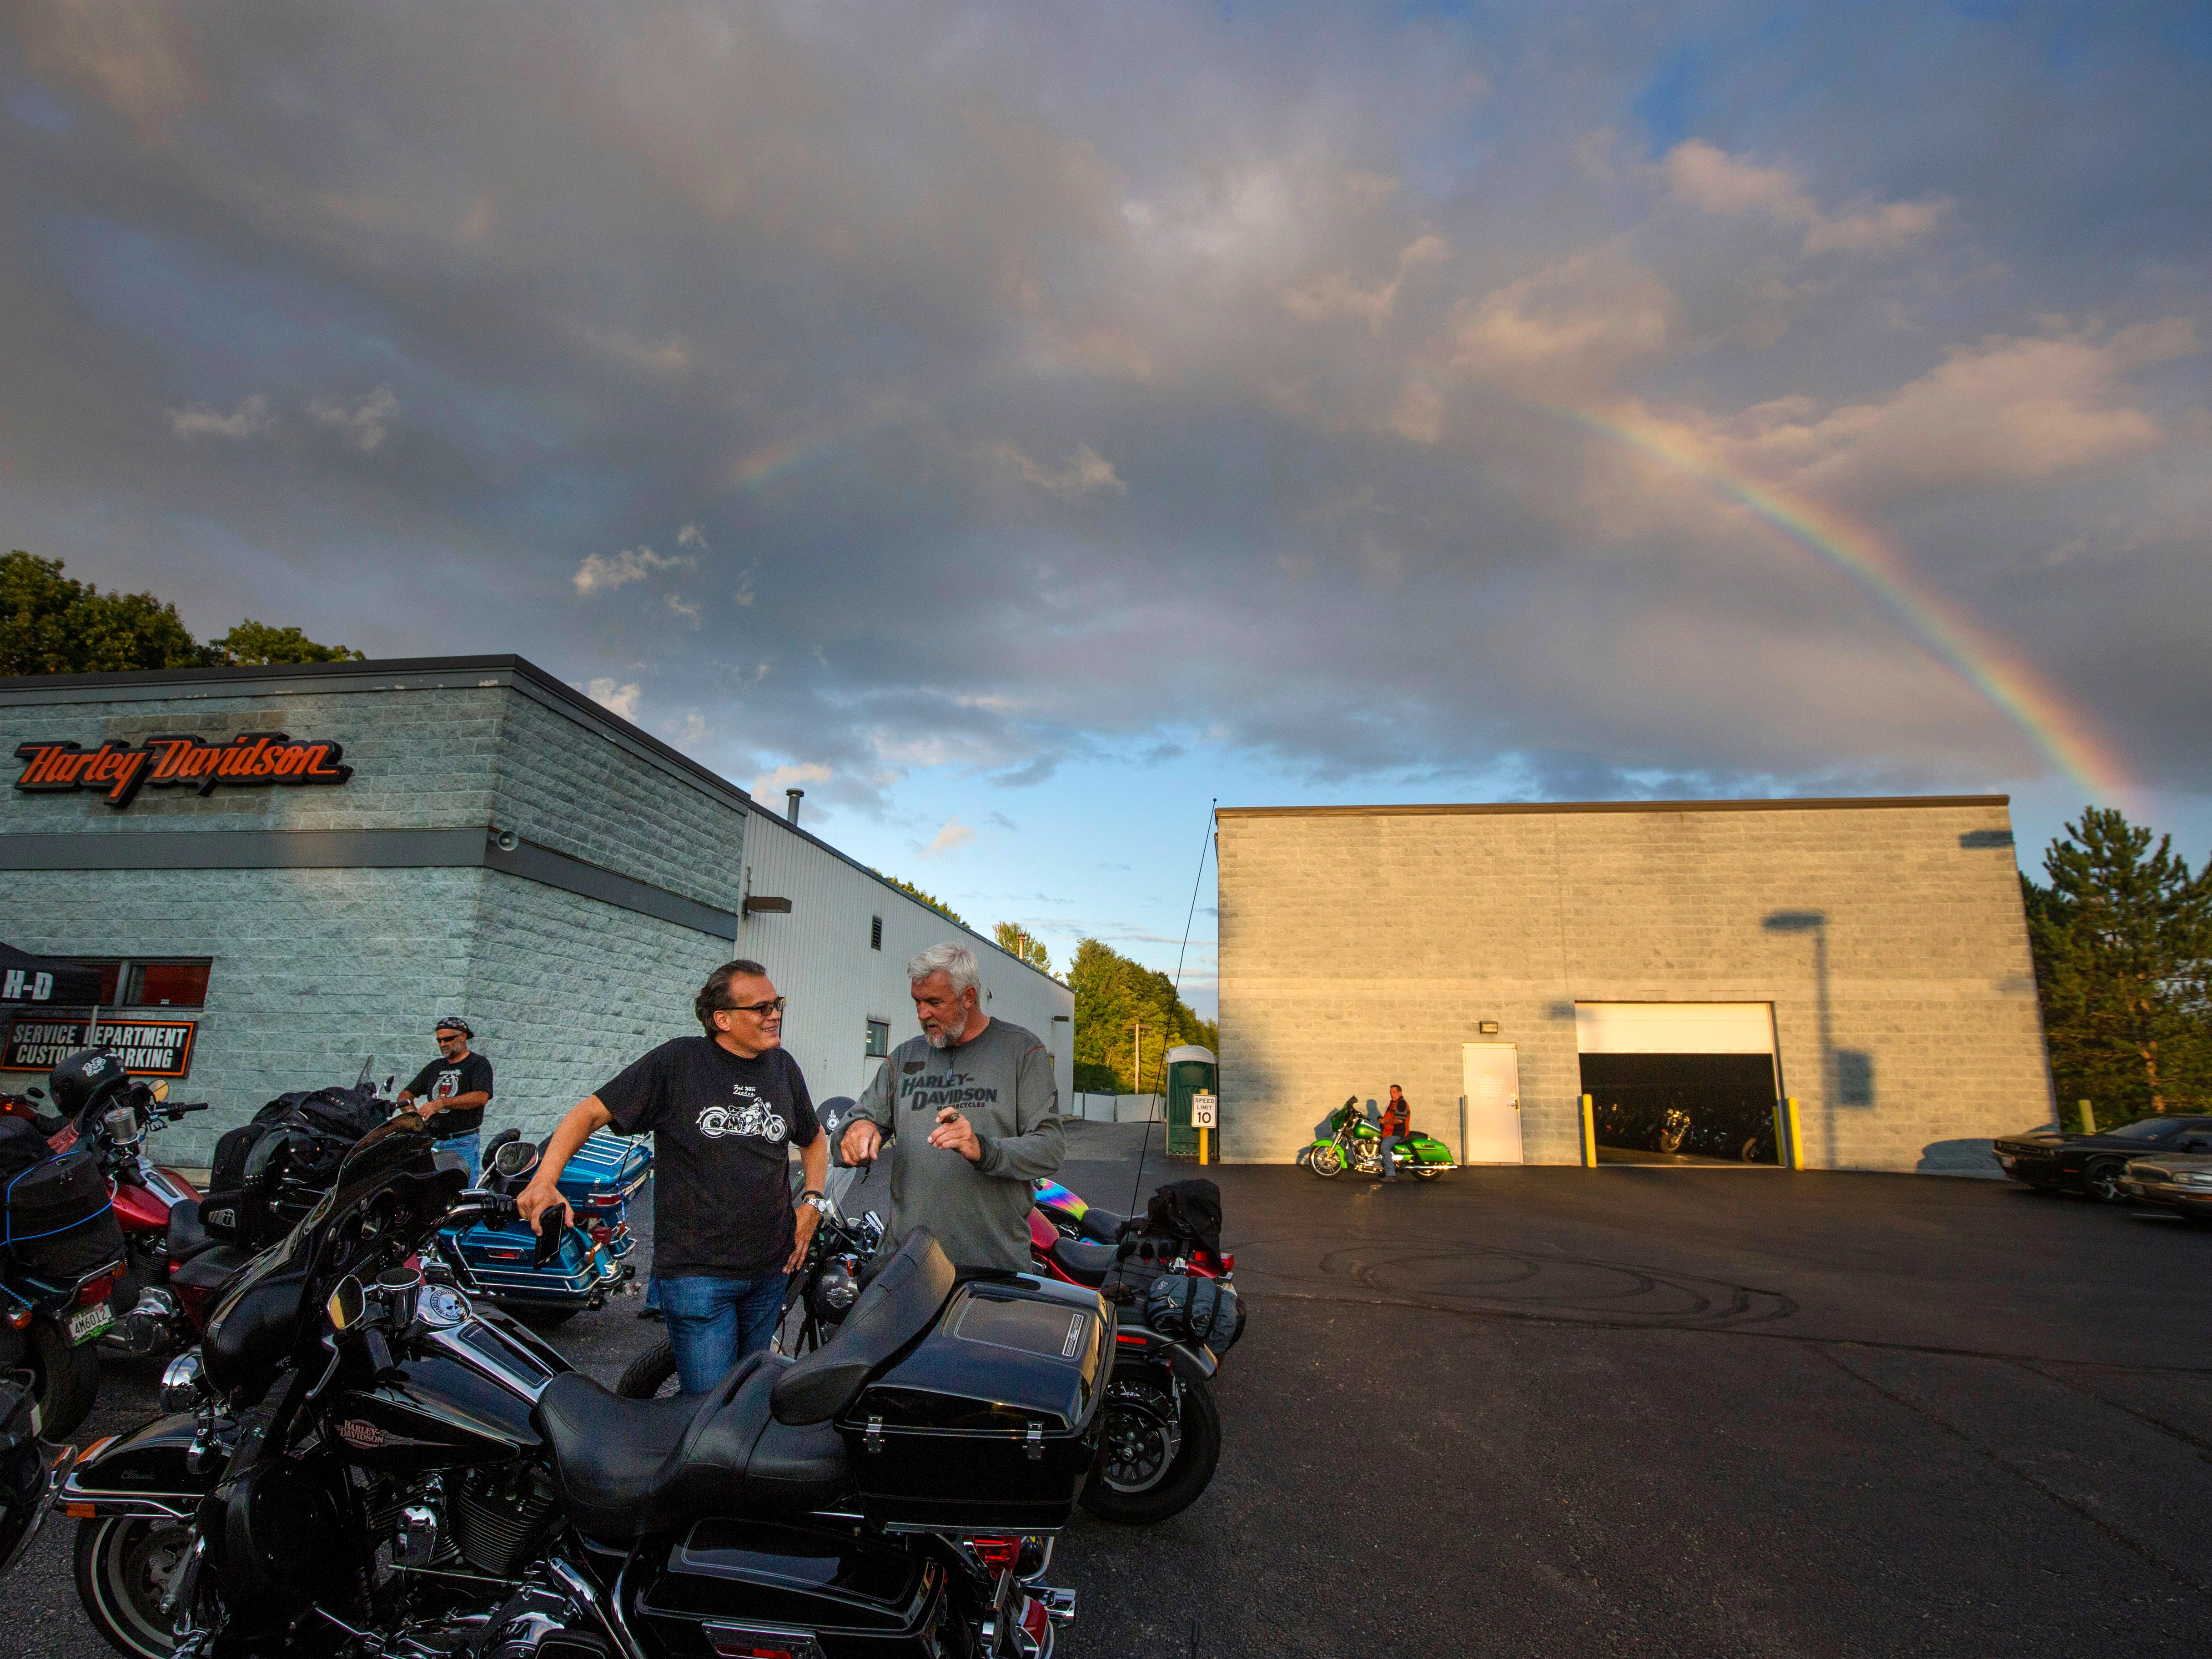 The Big Moose Harley-Davidson of Portland Maine held a kickoff party Wednesday, August 22, 2018 for the Harley Rides Home event the night before folks ride from Portland Maine to Milwaukee to celebrate Harley-Davidson turning 115-years-old.